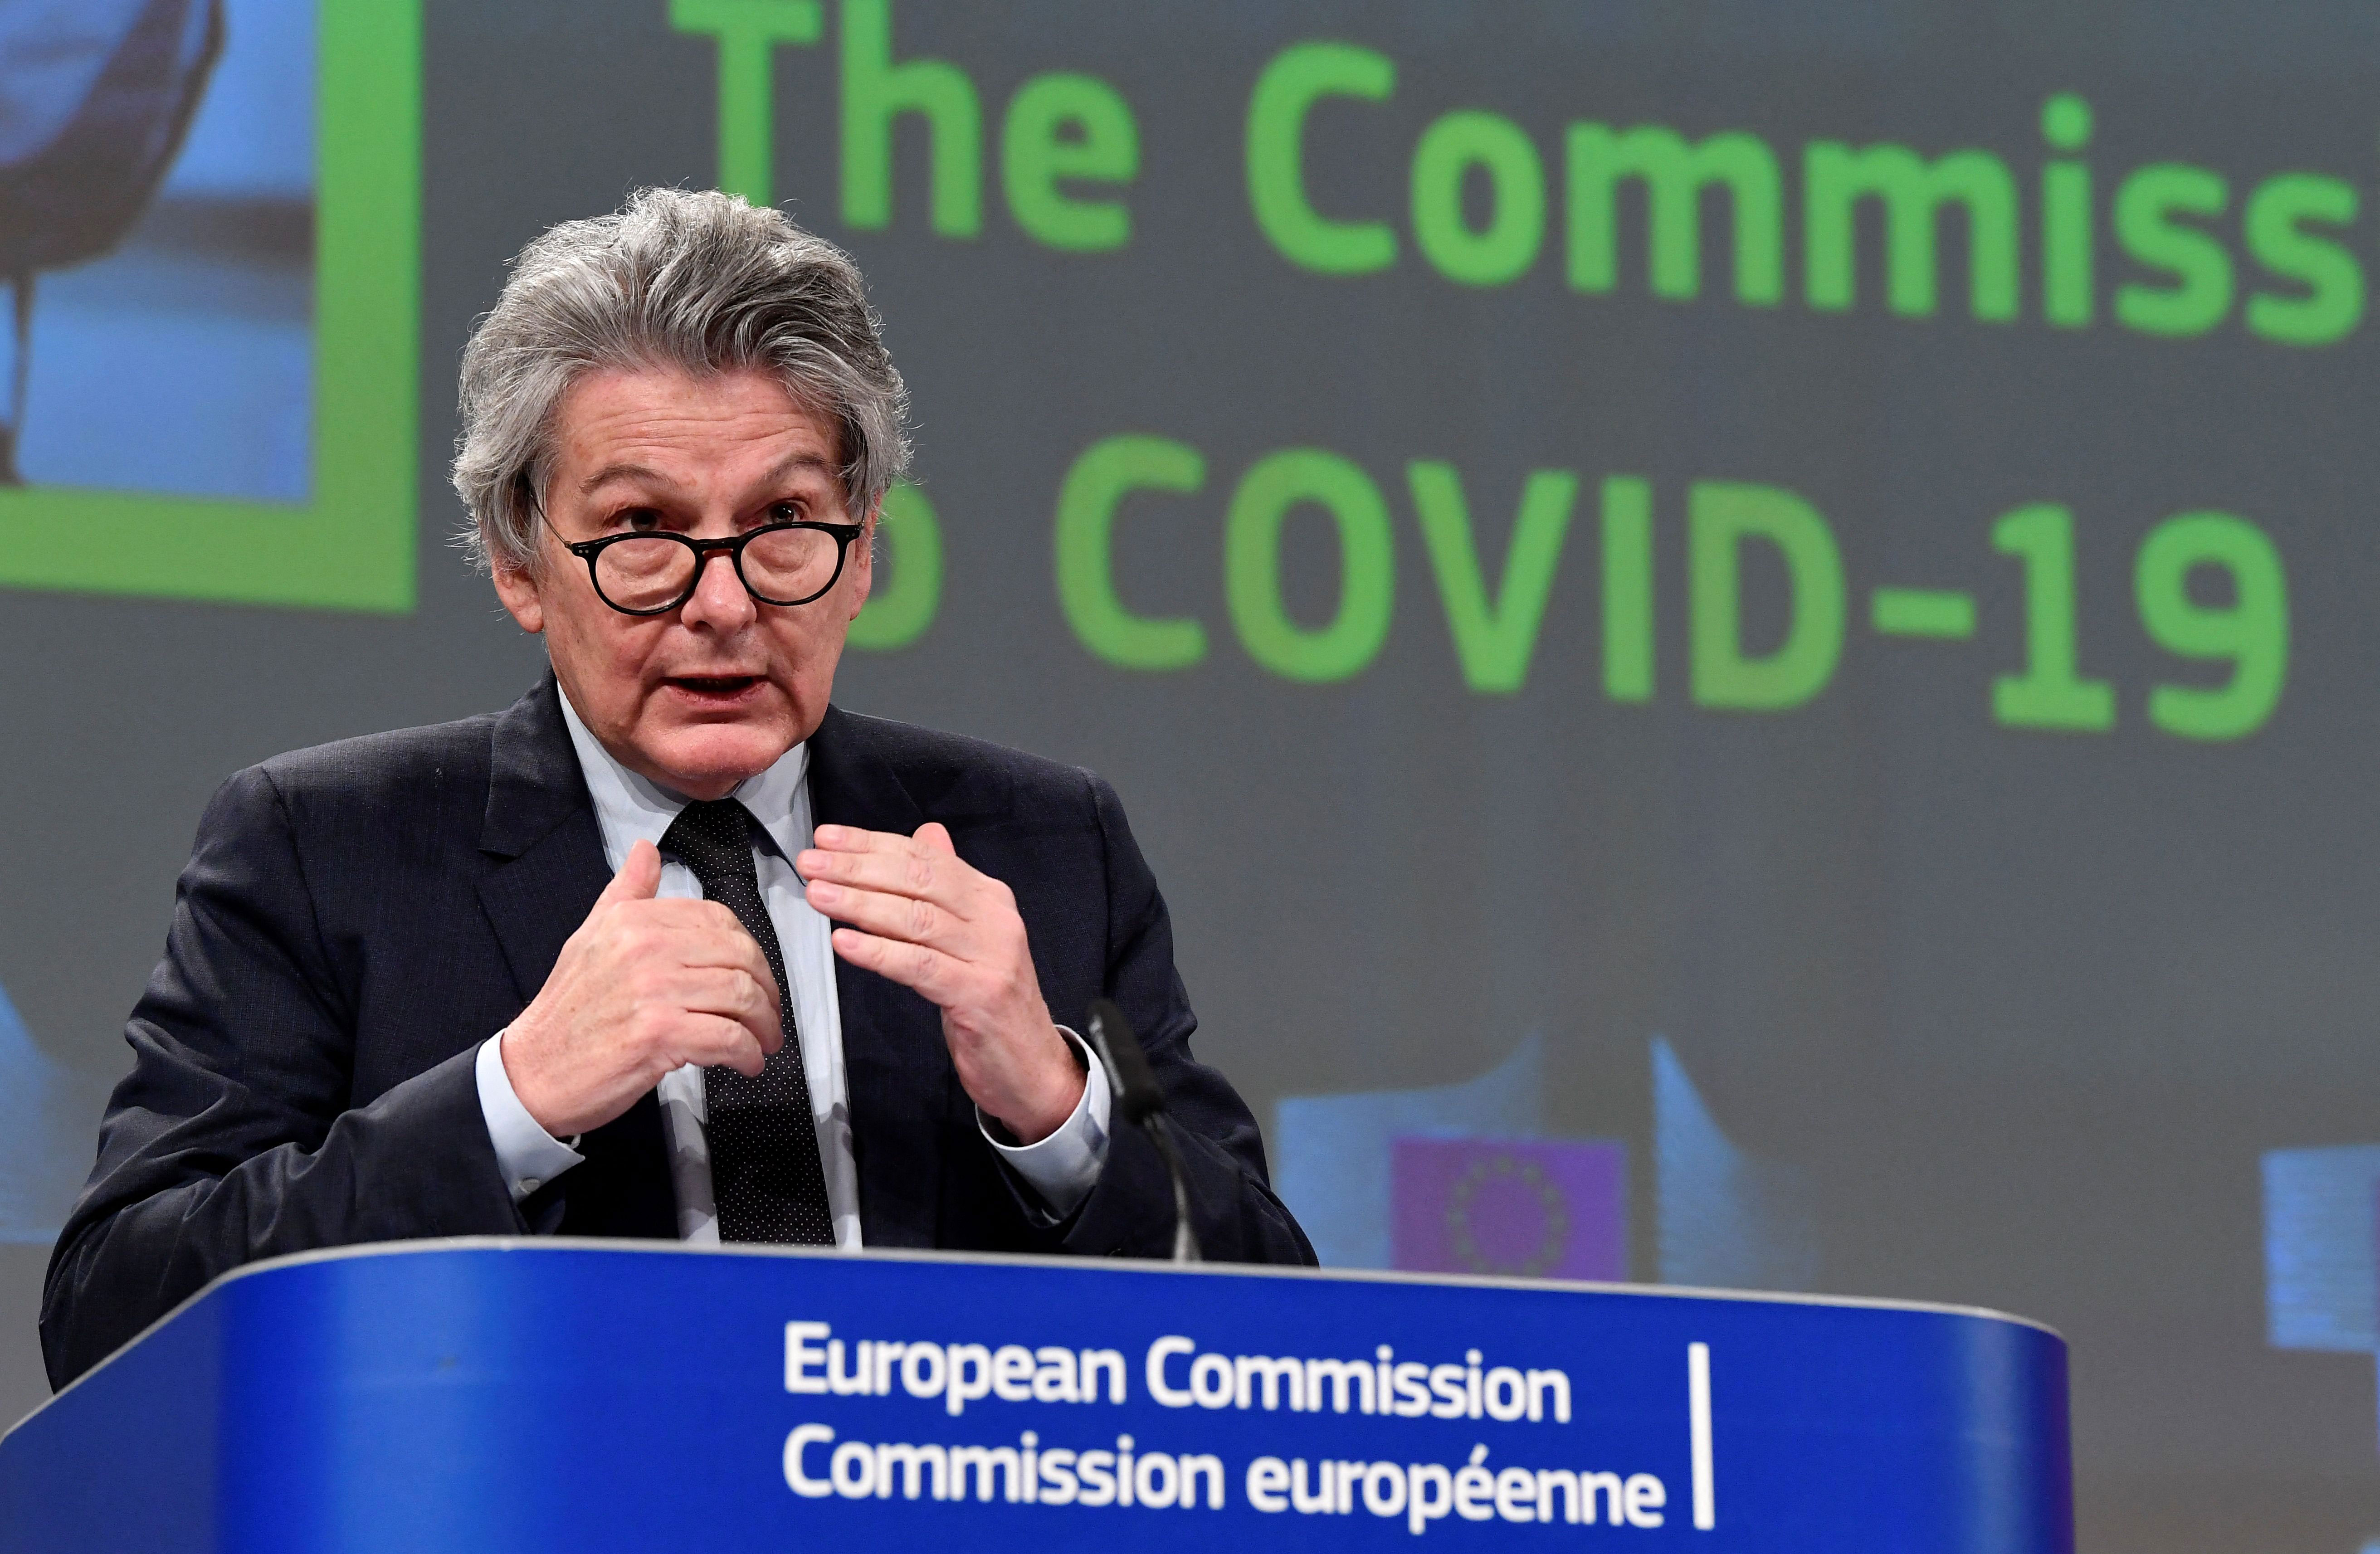 The European Union's vaccine chief Thierry Breton speaks during a press conference in Brussels, Belgium, on March 17.